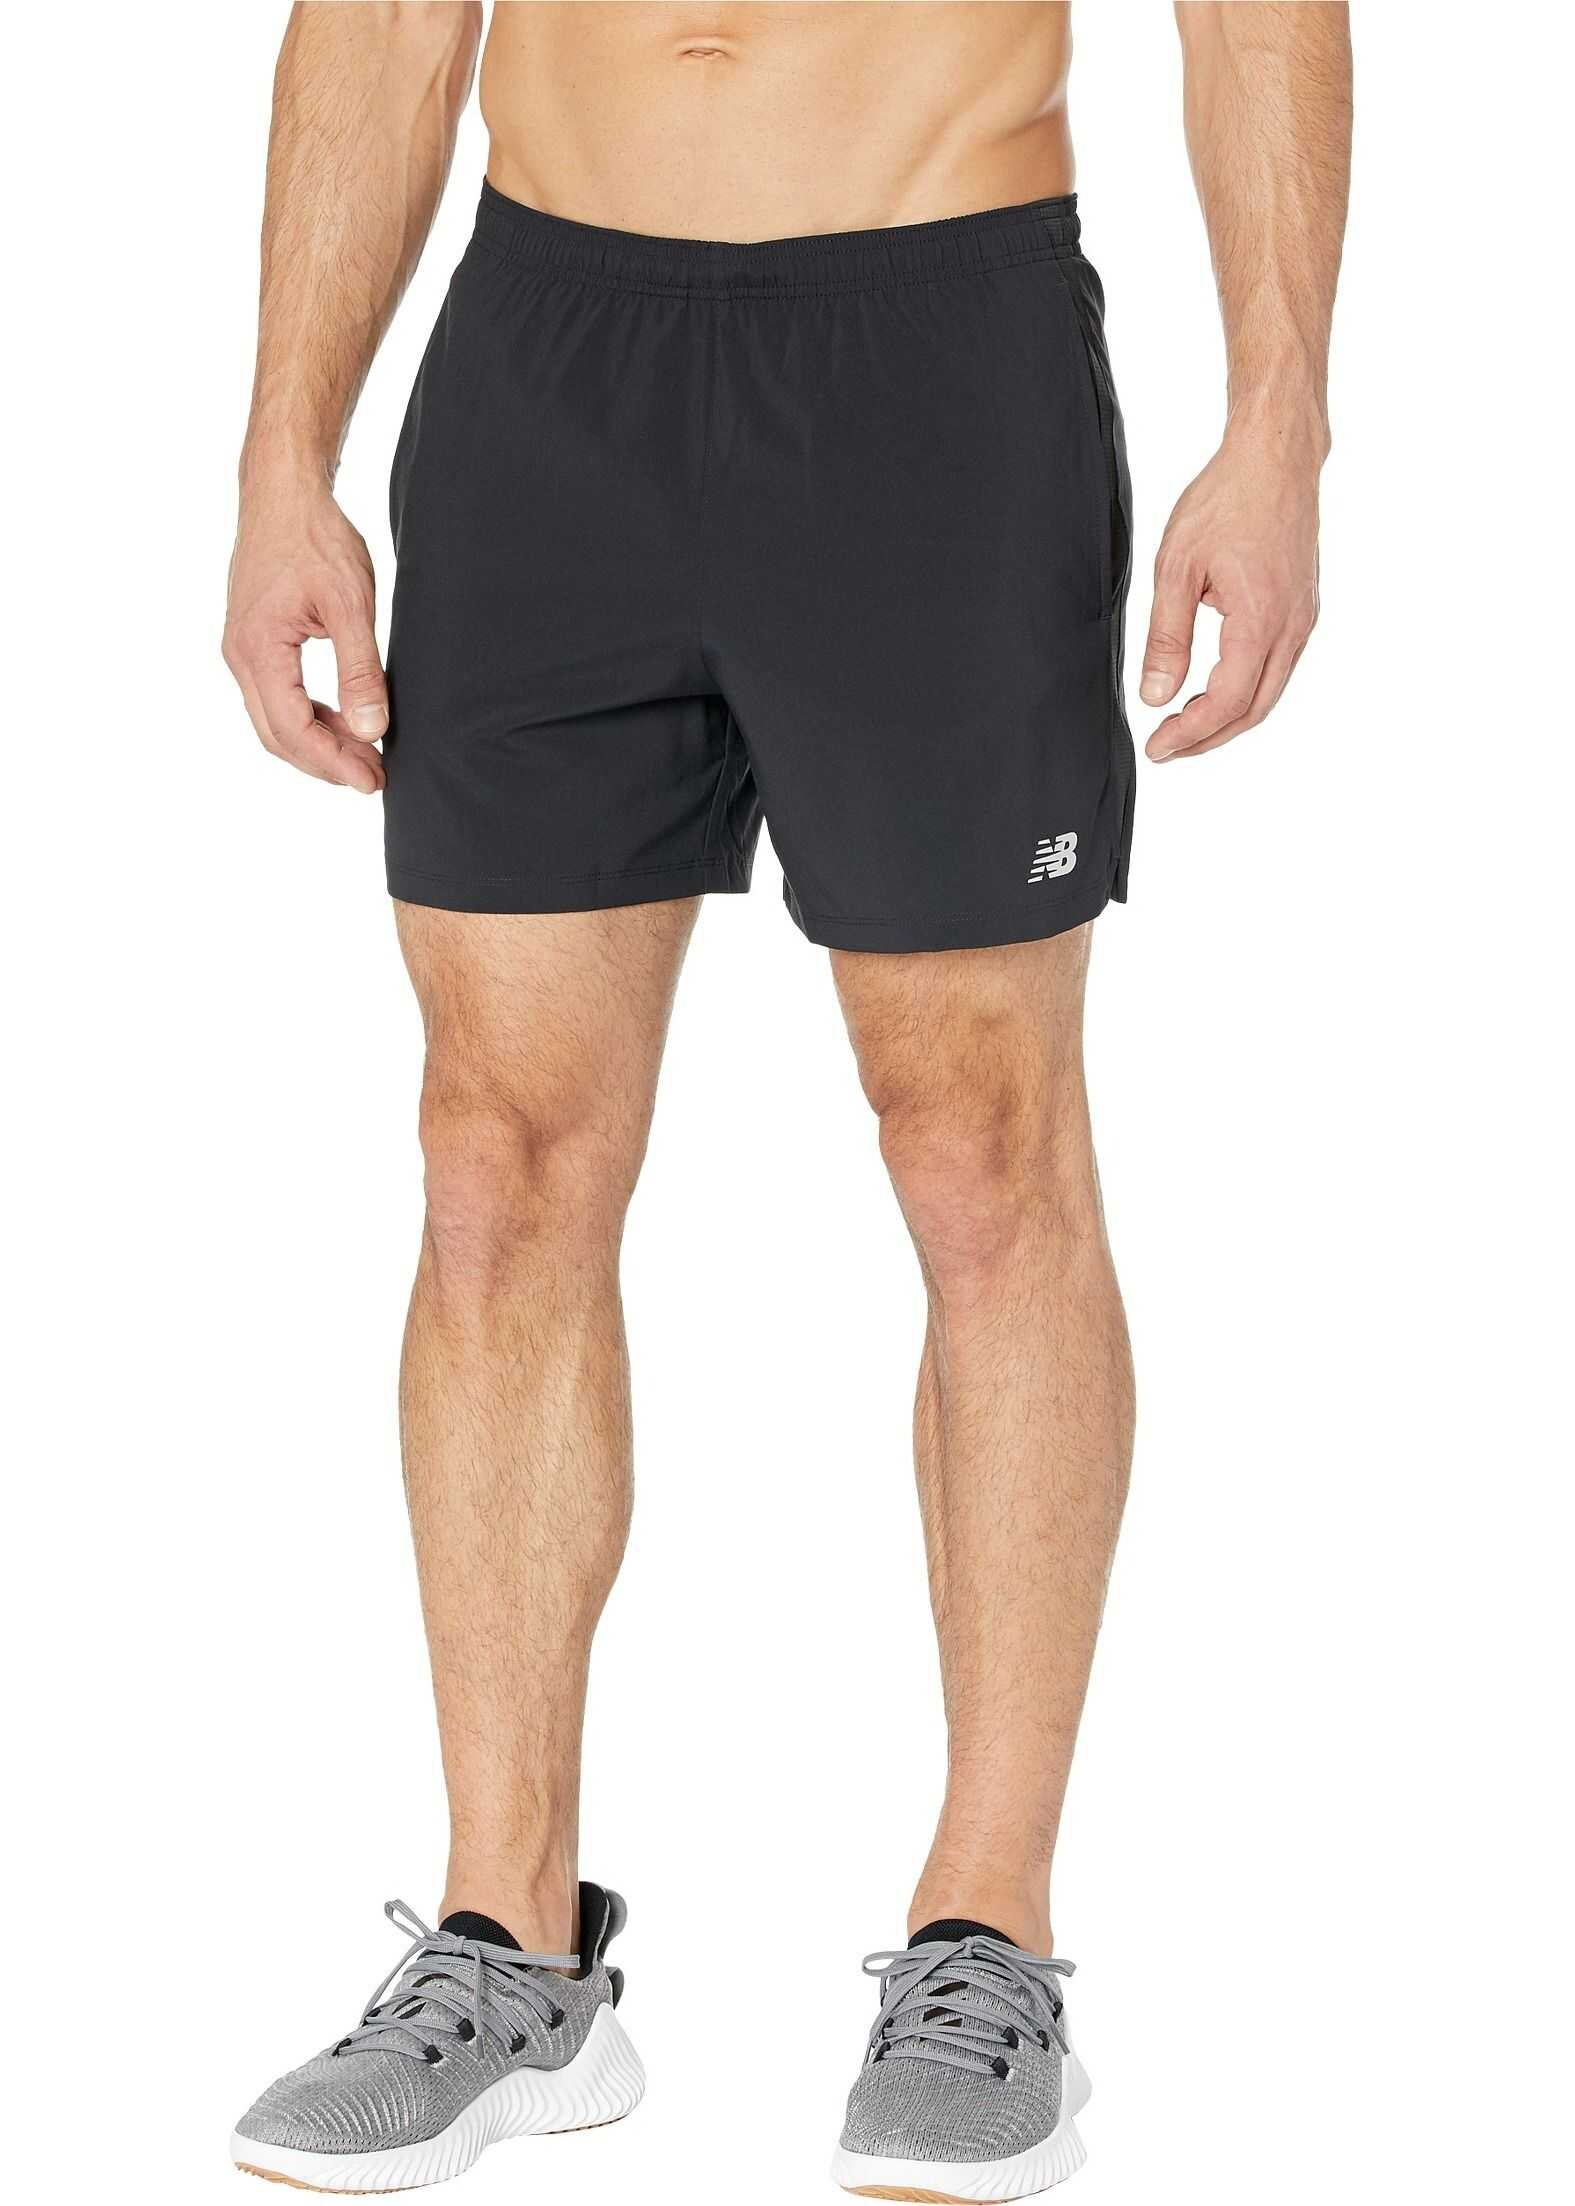 "5"" Accelerate Shorts"